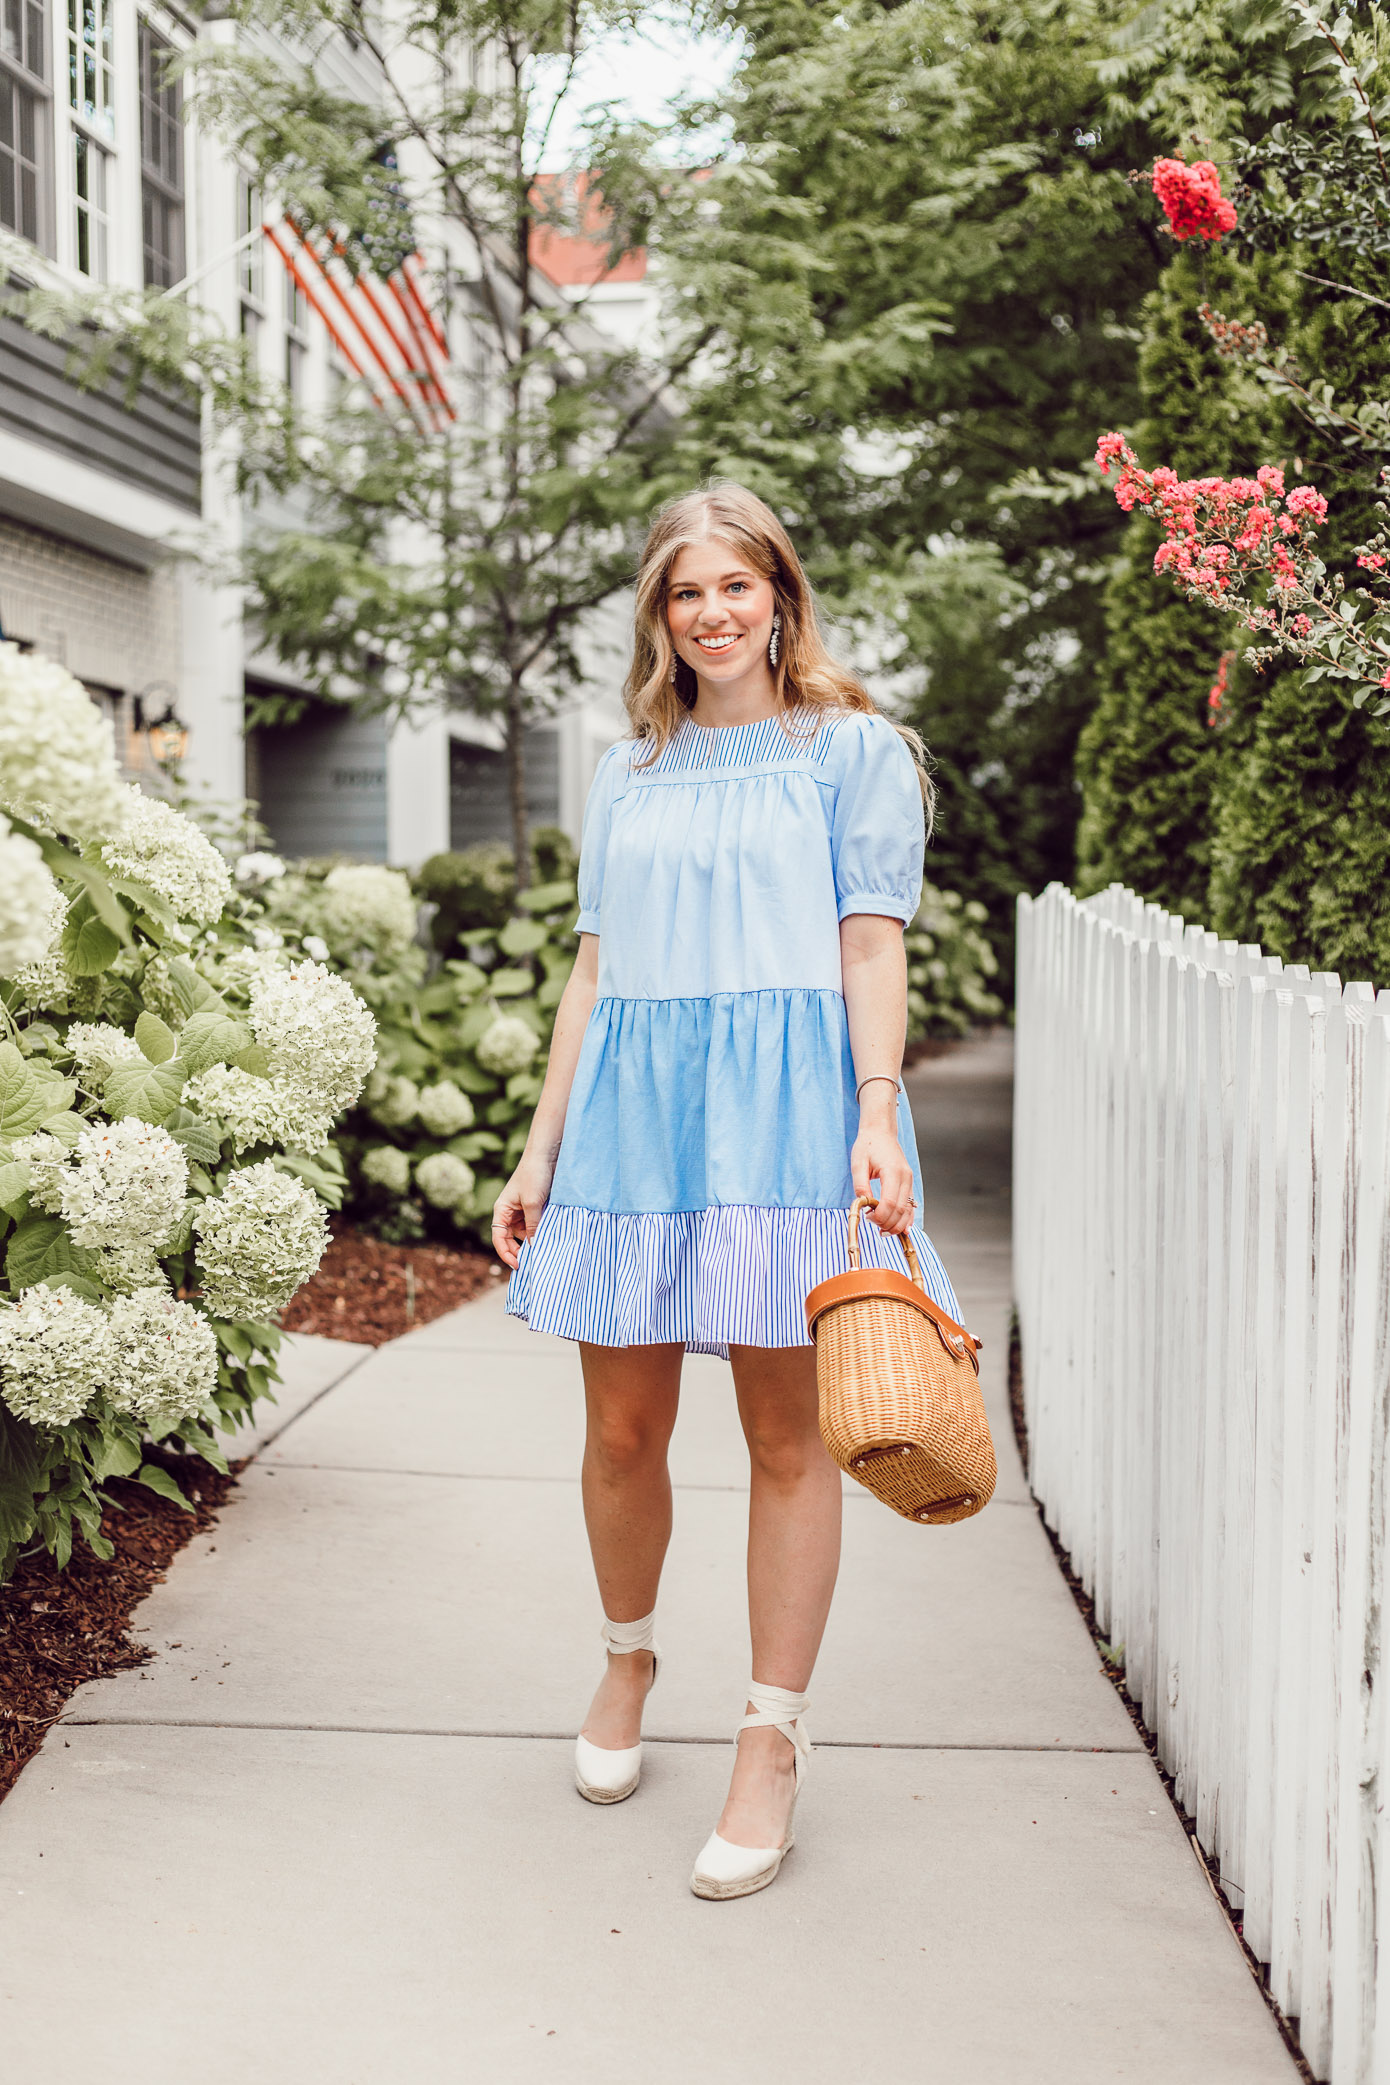 Everyday blue and white summer dresses that can be worn to any occasion   English Factory Summer Dress   Louella Reese